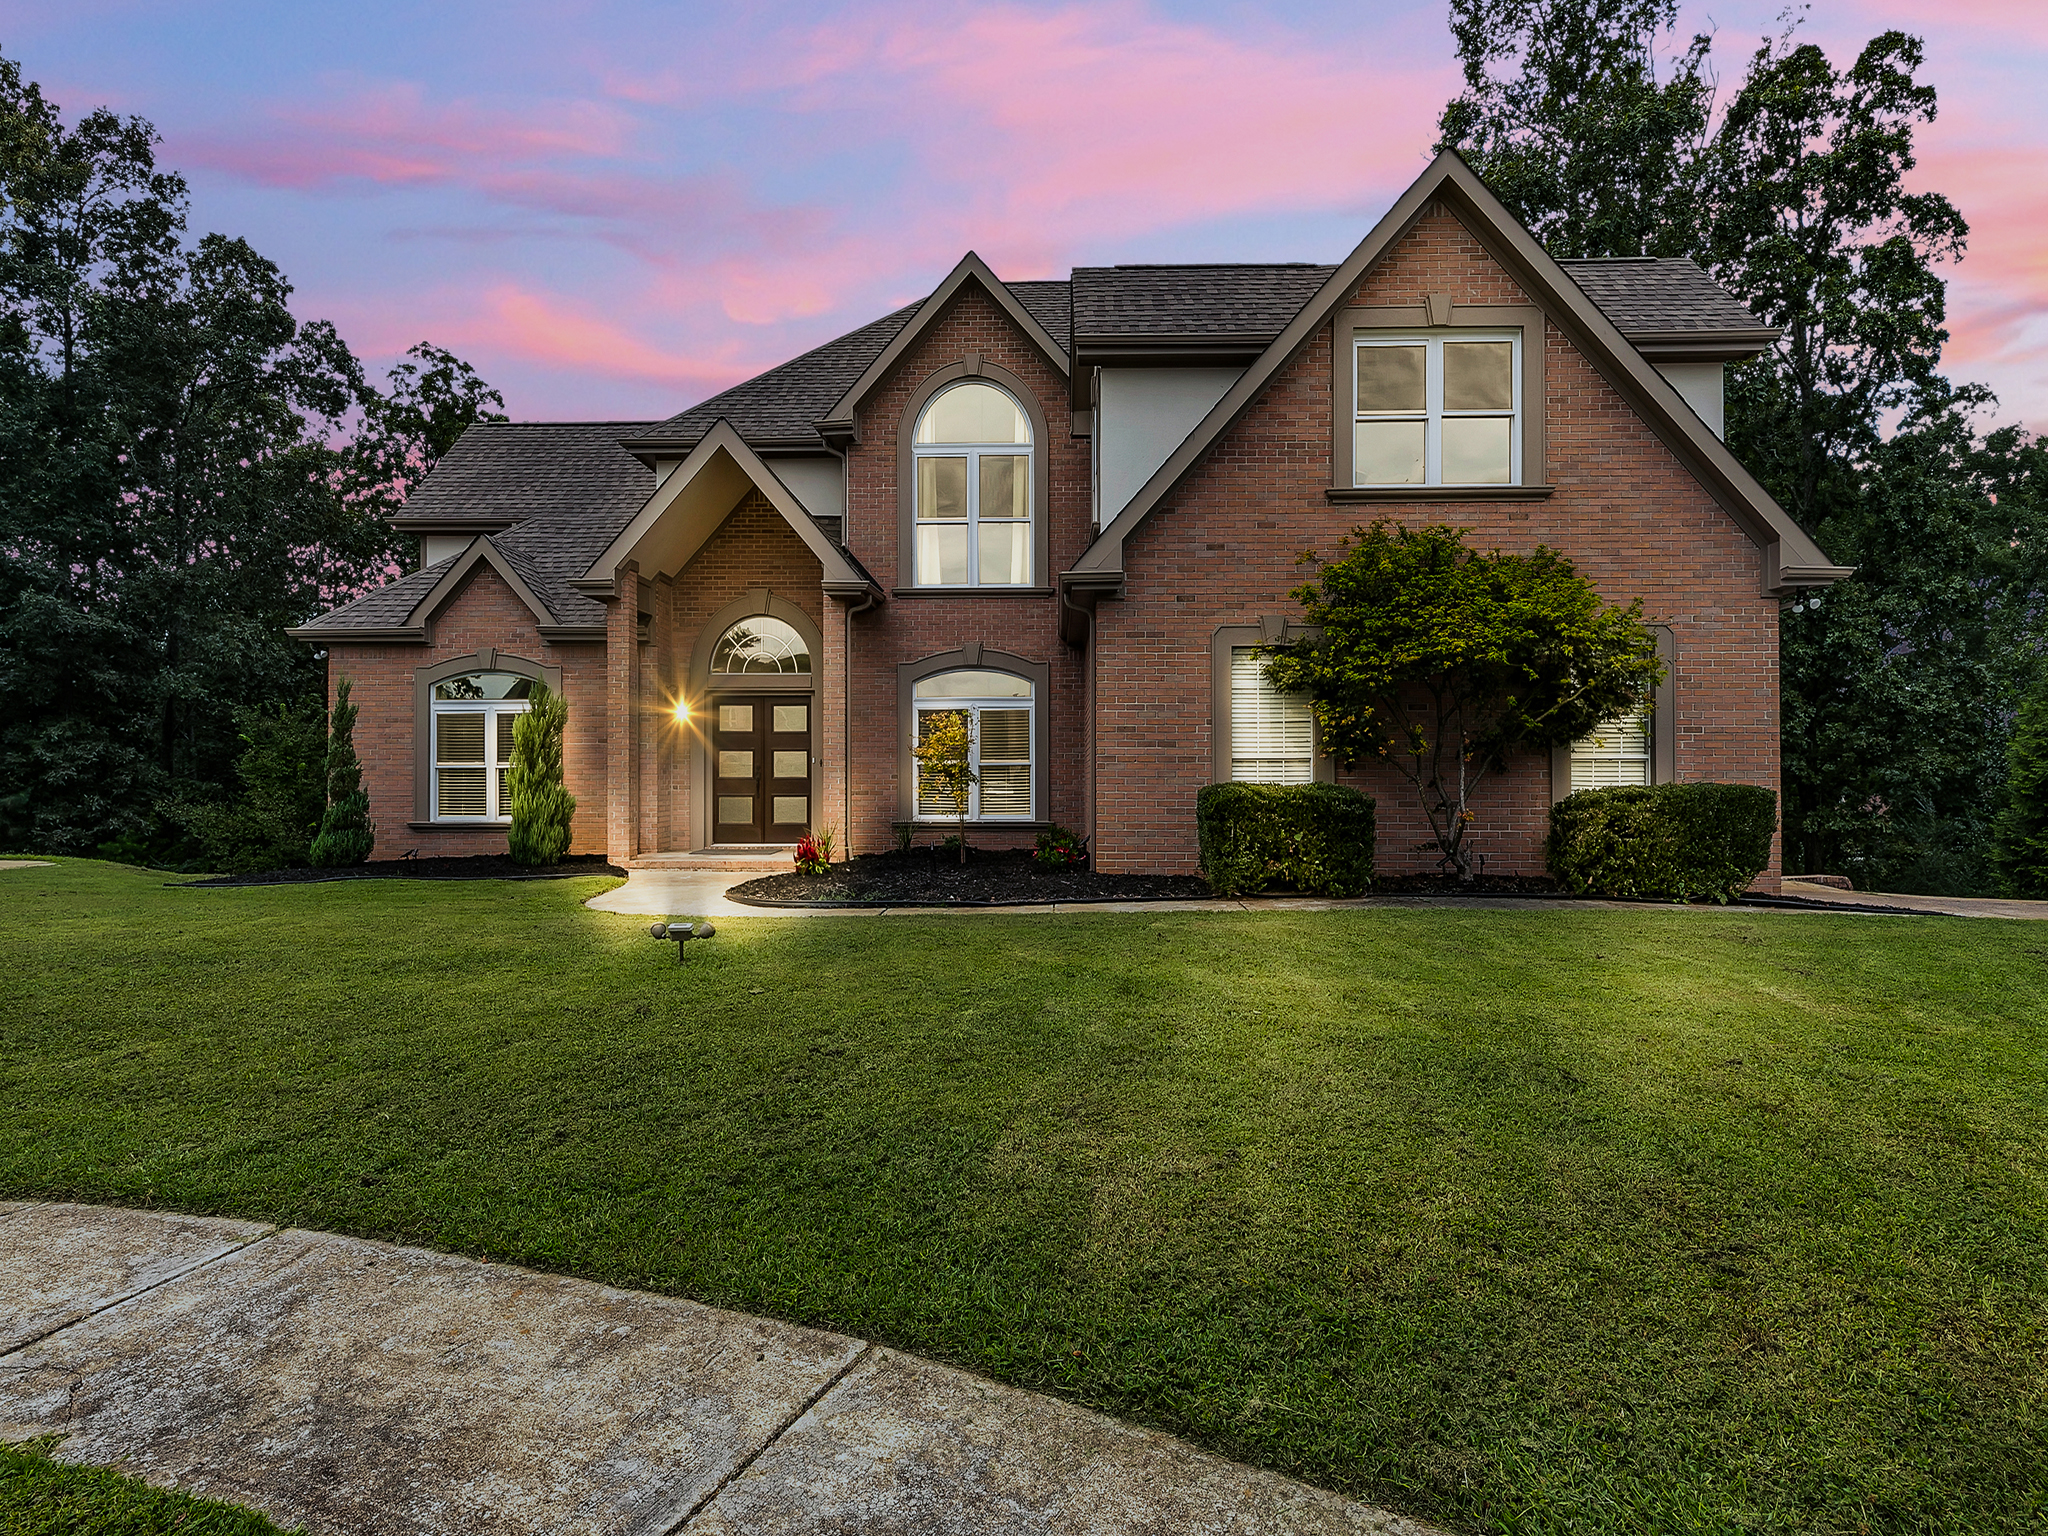 849A9408-Night Linen Crest Way - Ooltewah Real Estate Photography